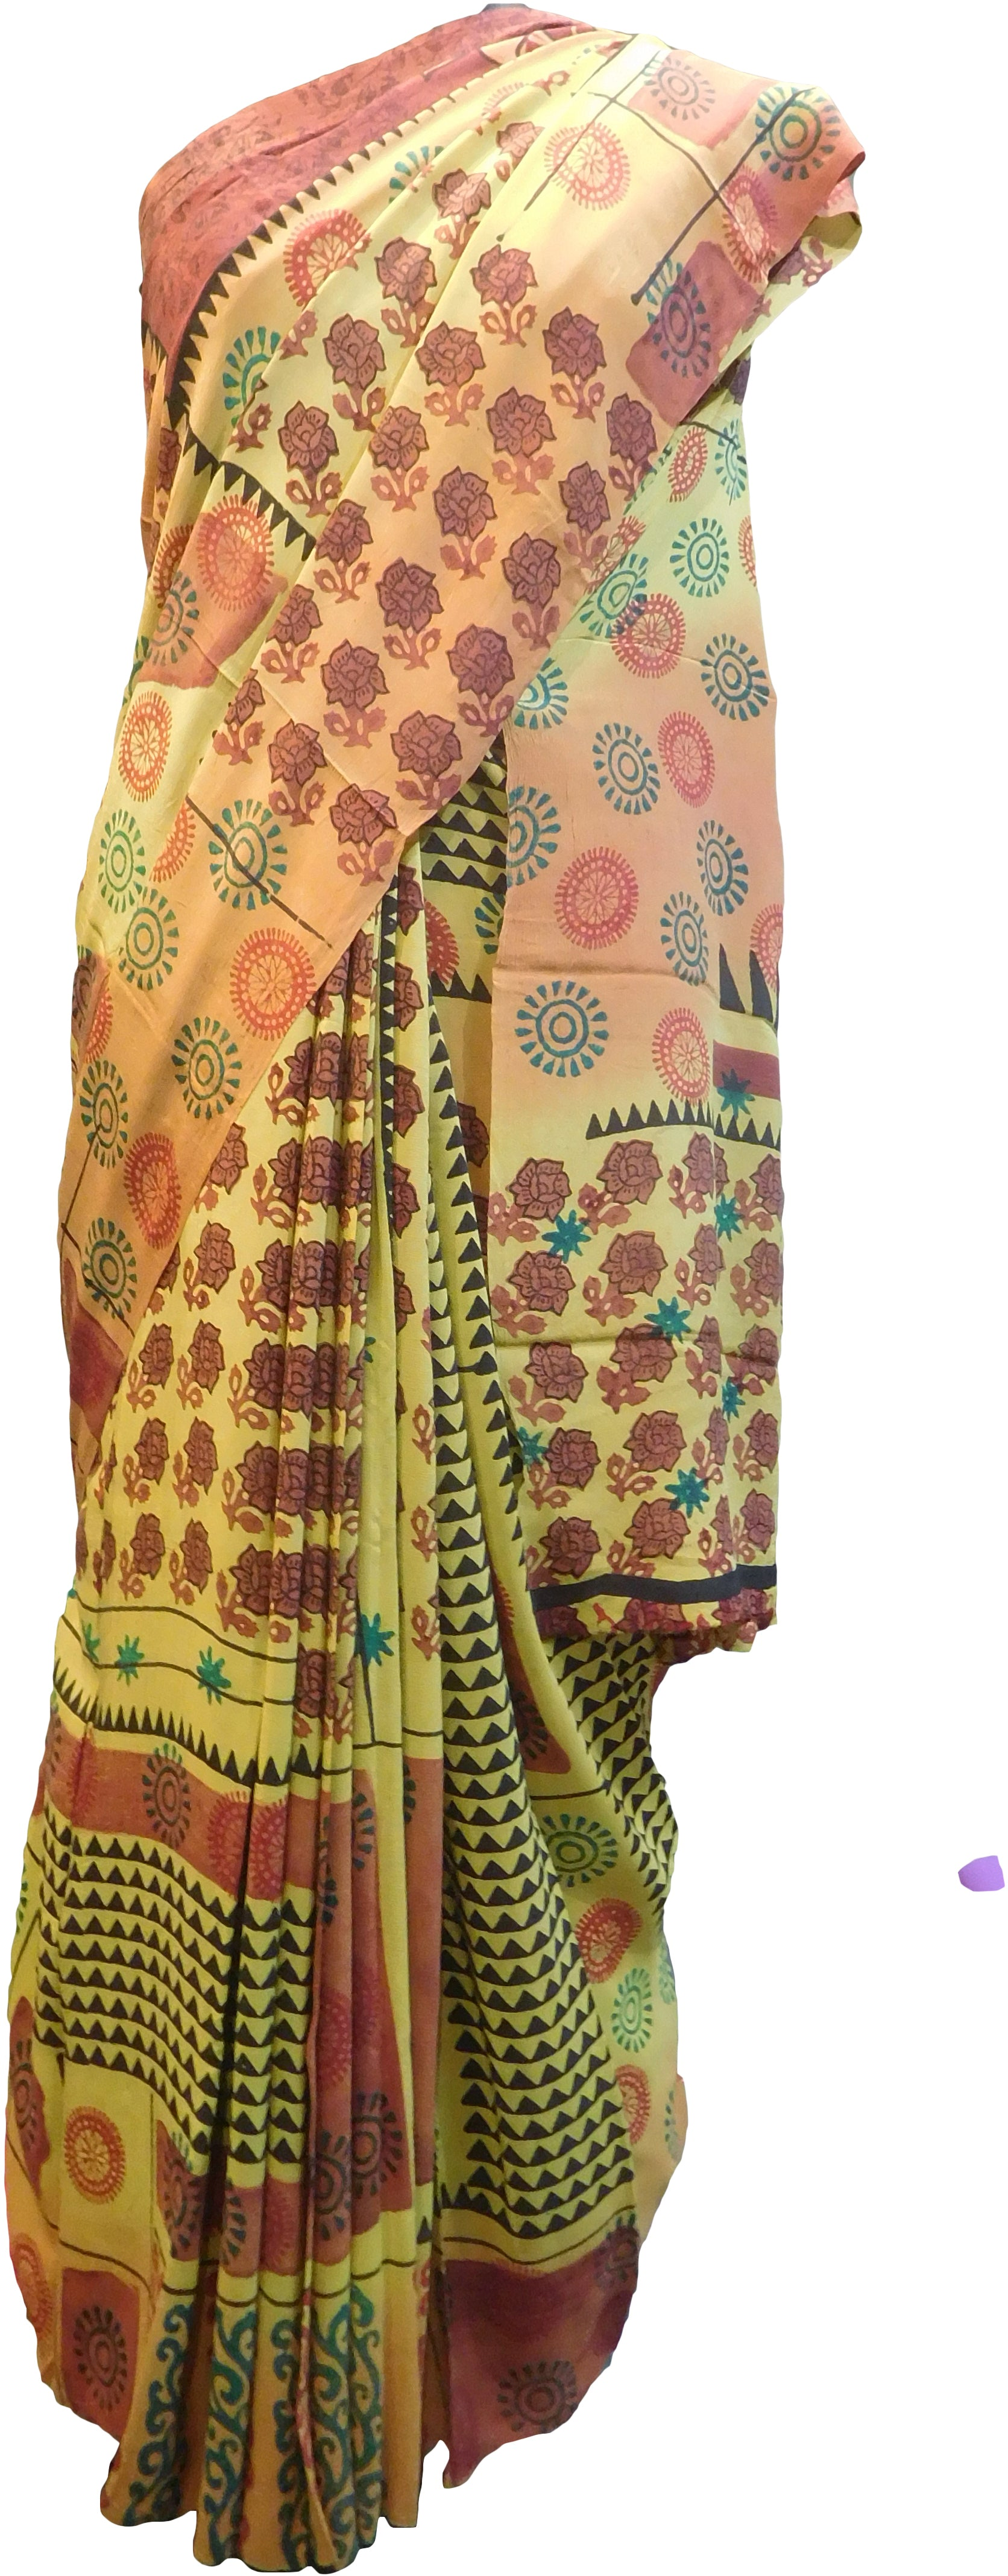 Multicolor Designer Wedding Partywear Pure Crepe Hand Brush Reprinted Kolkata Saree Sari With Blouse Piece  RP288